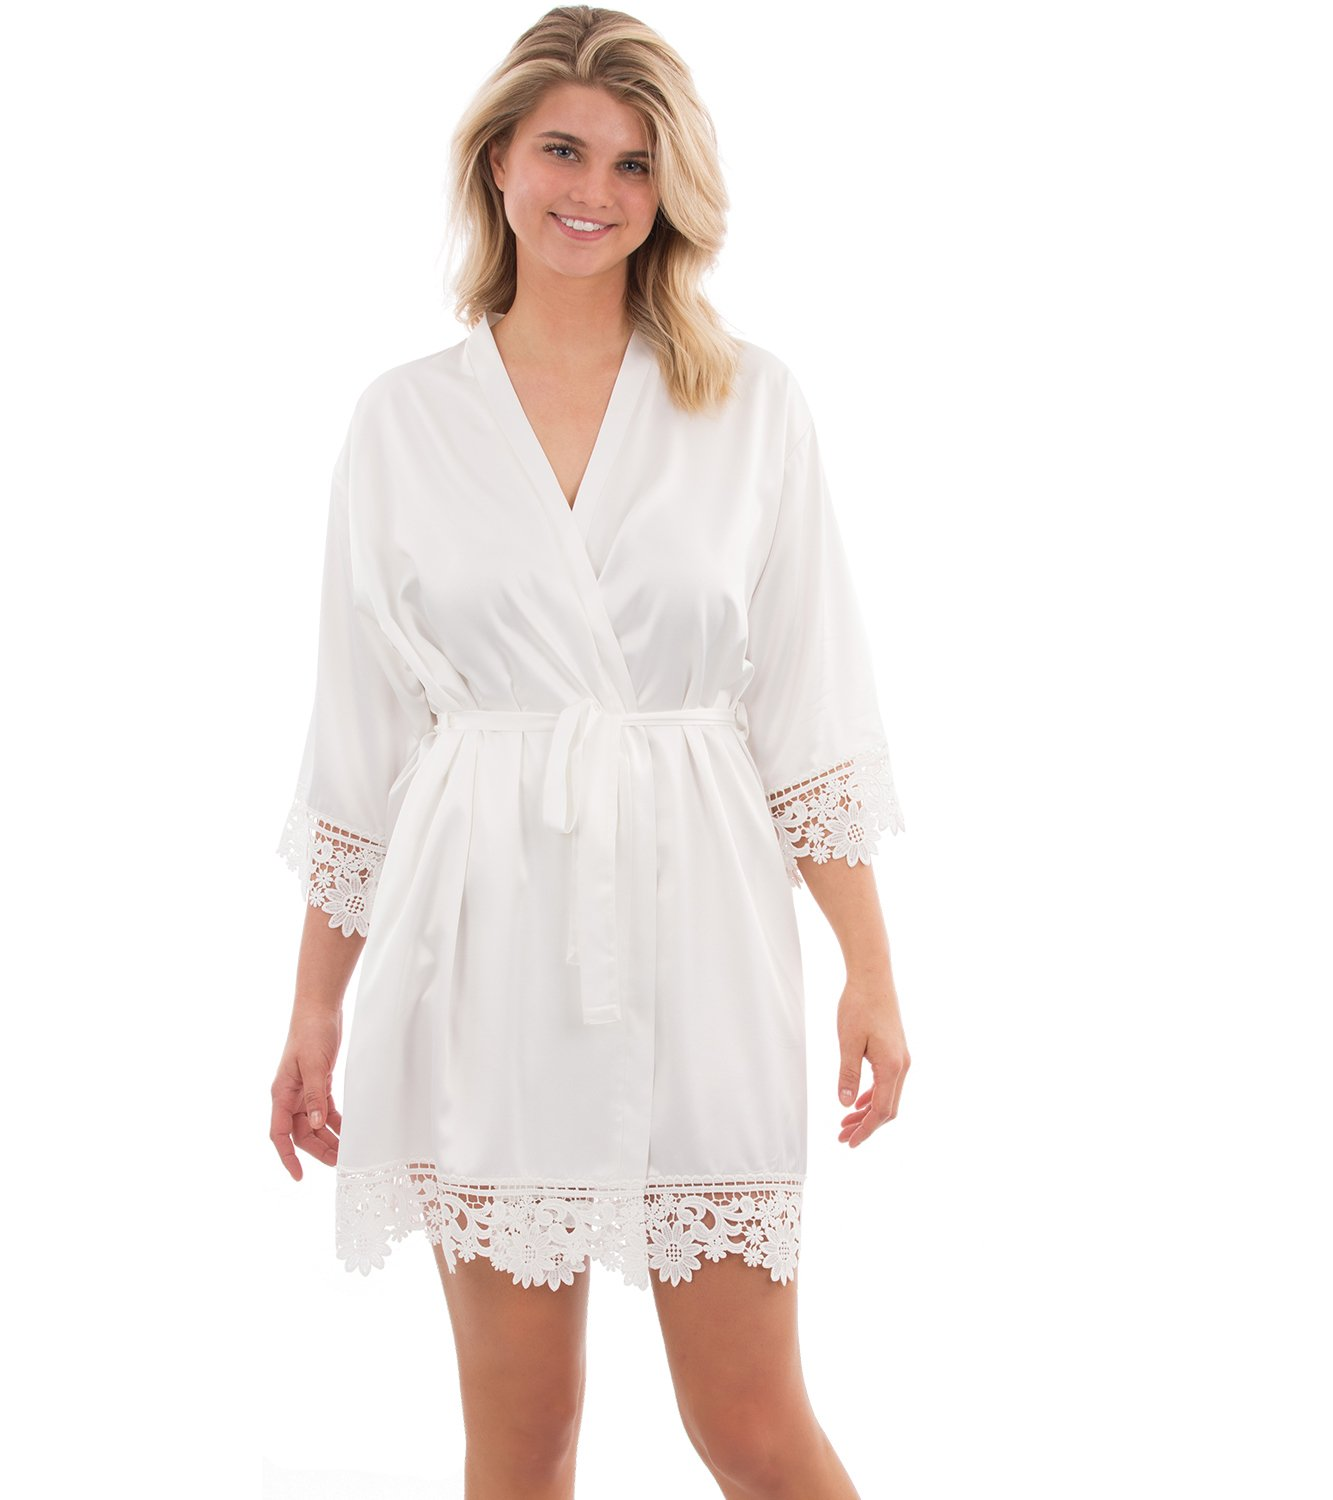 VEAMI Juliette Lace Bridal Robe, Short Robe with a Gold Graphic- White Magnolia- Large